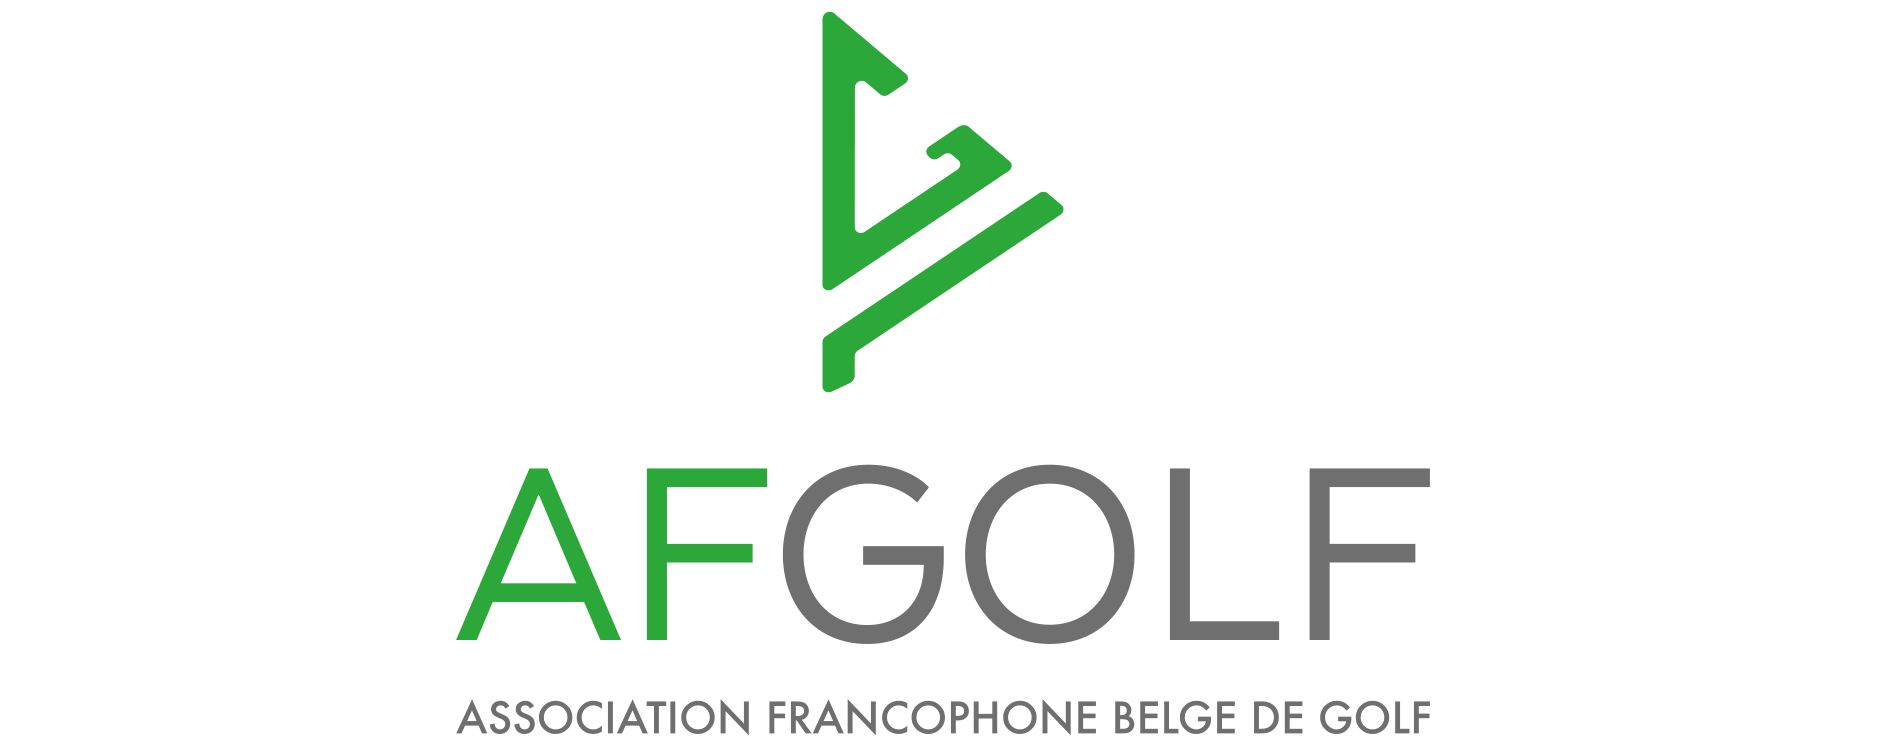 Logo of Association Francophone Belge de Golf